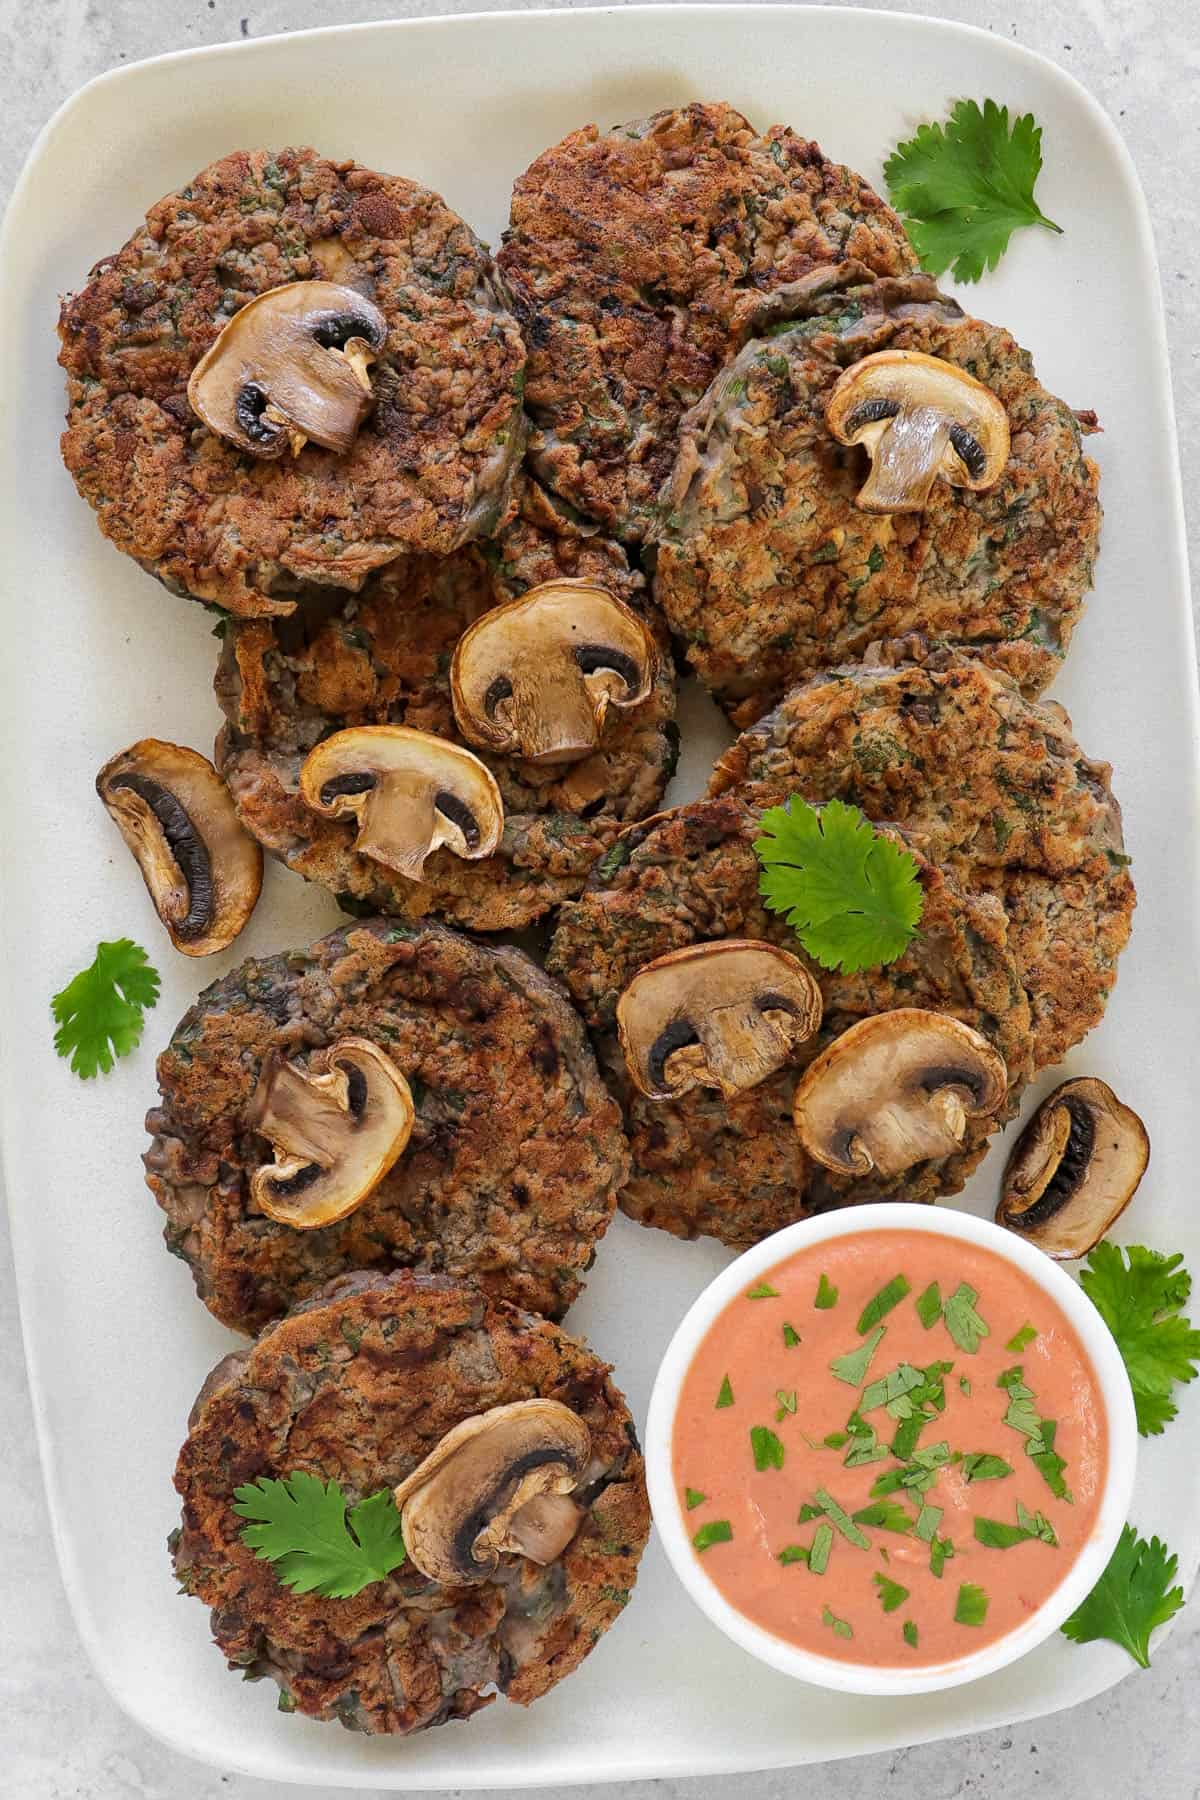 Fritter on rectangle plate. cooked mushrooms and coriander leaves on top of fritters for decoration. Creamy tomato sauce on the side.